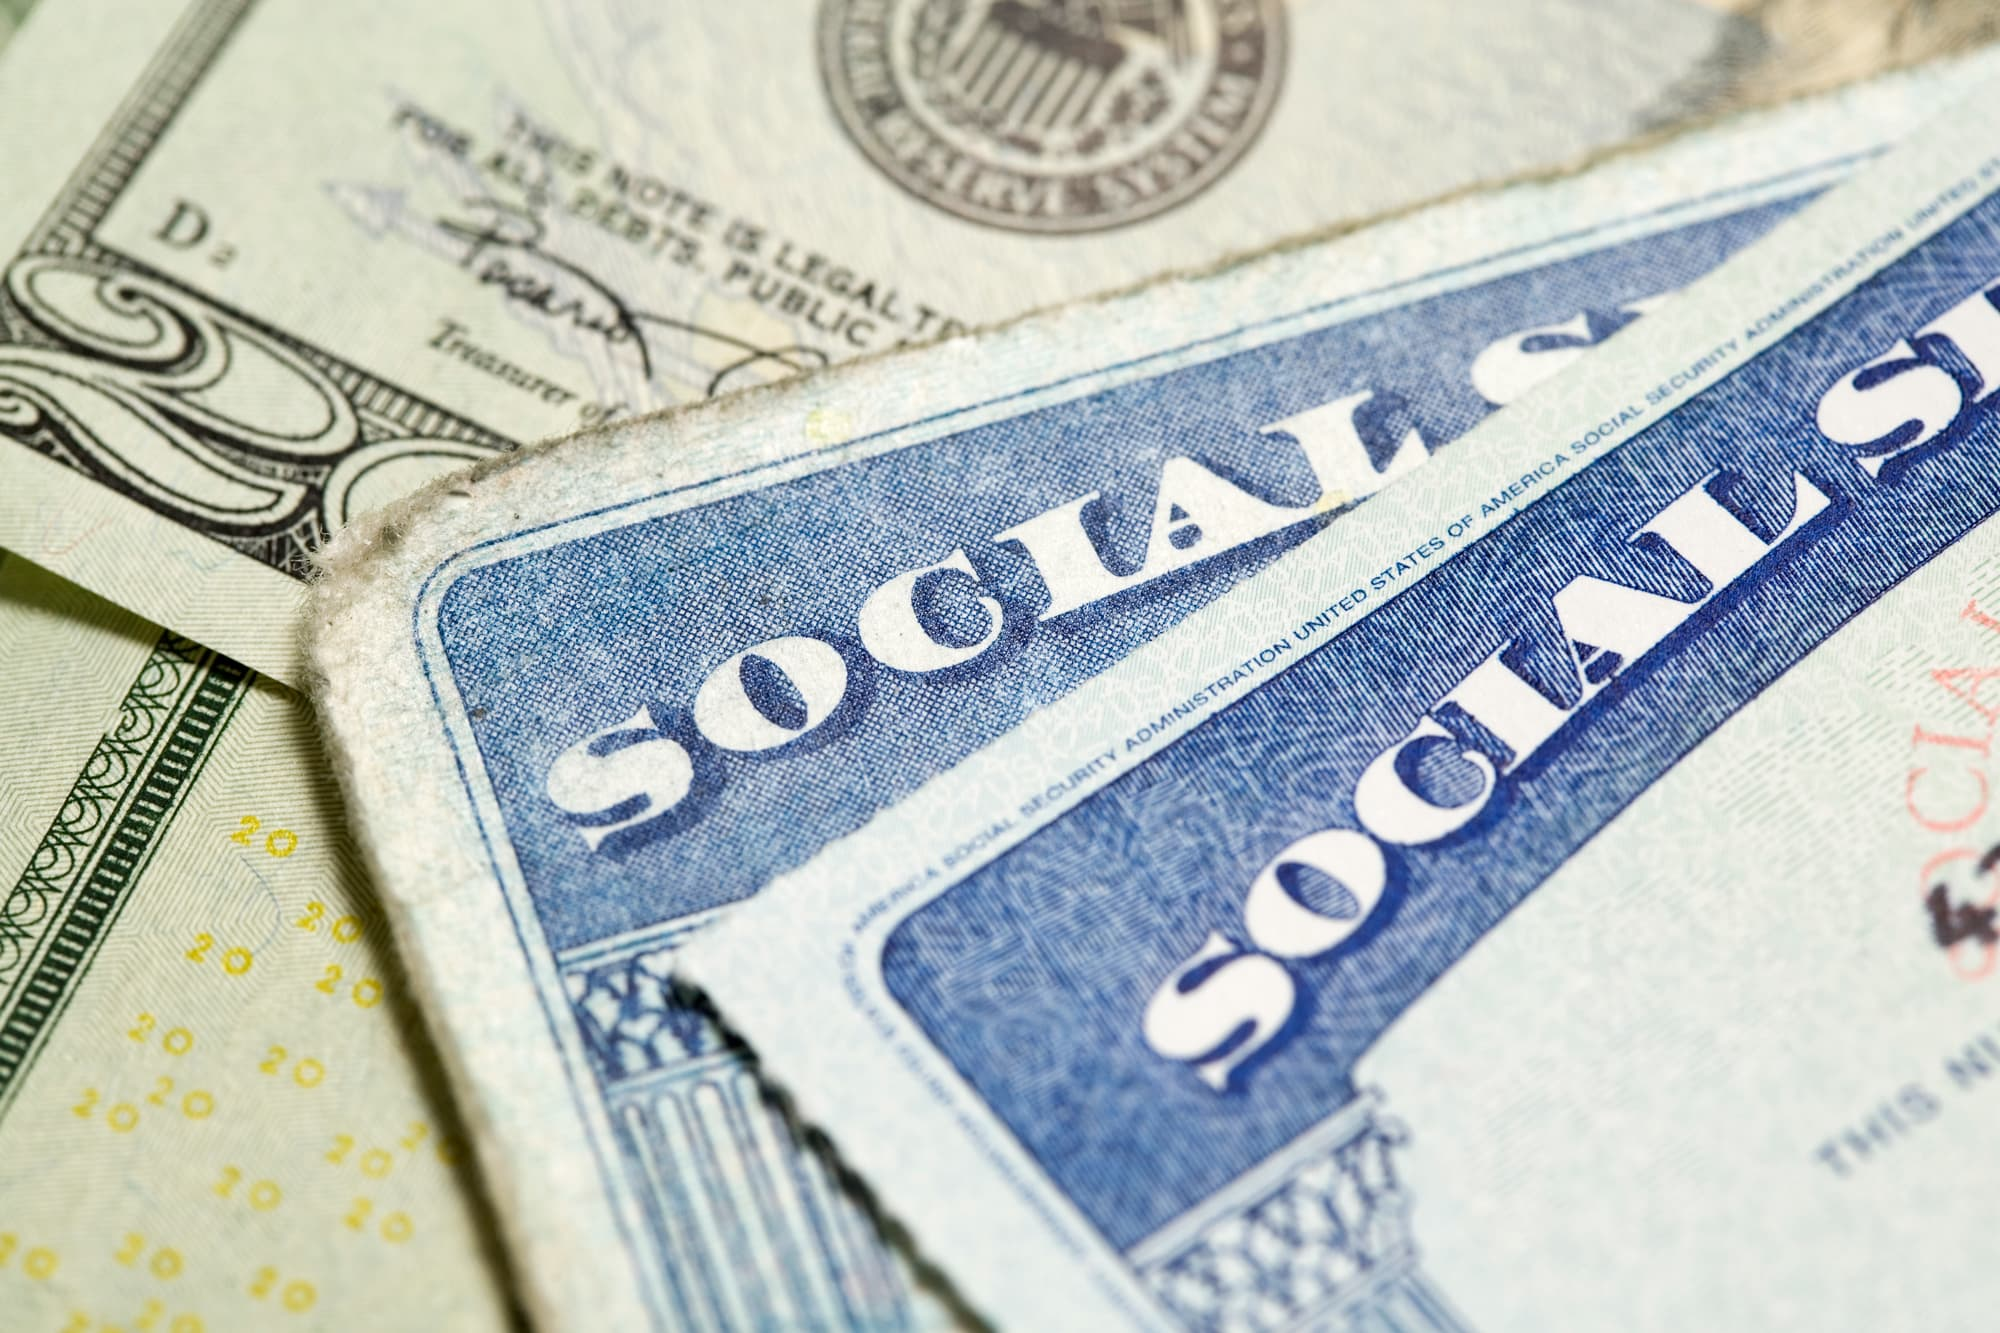 Steps to successfully apply for Social Security disability